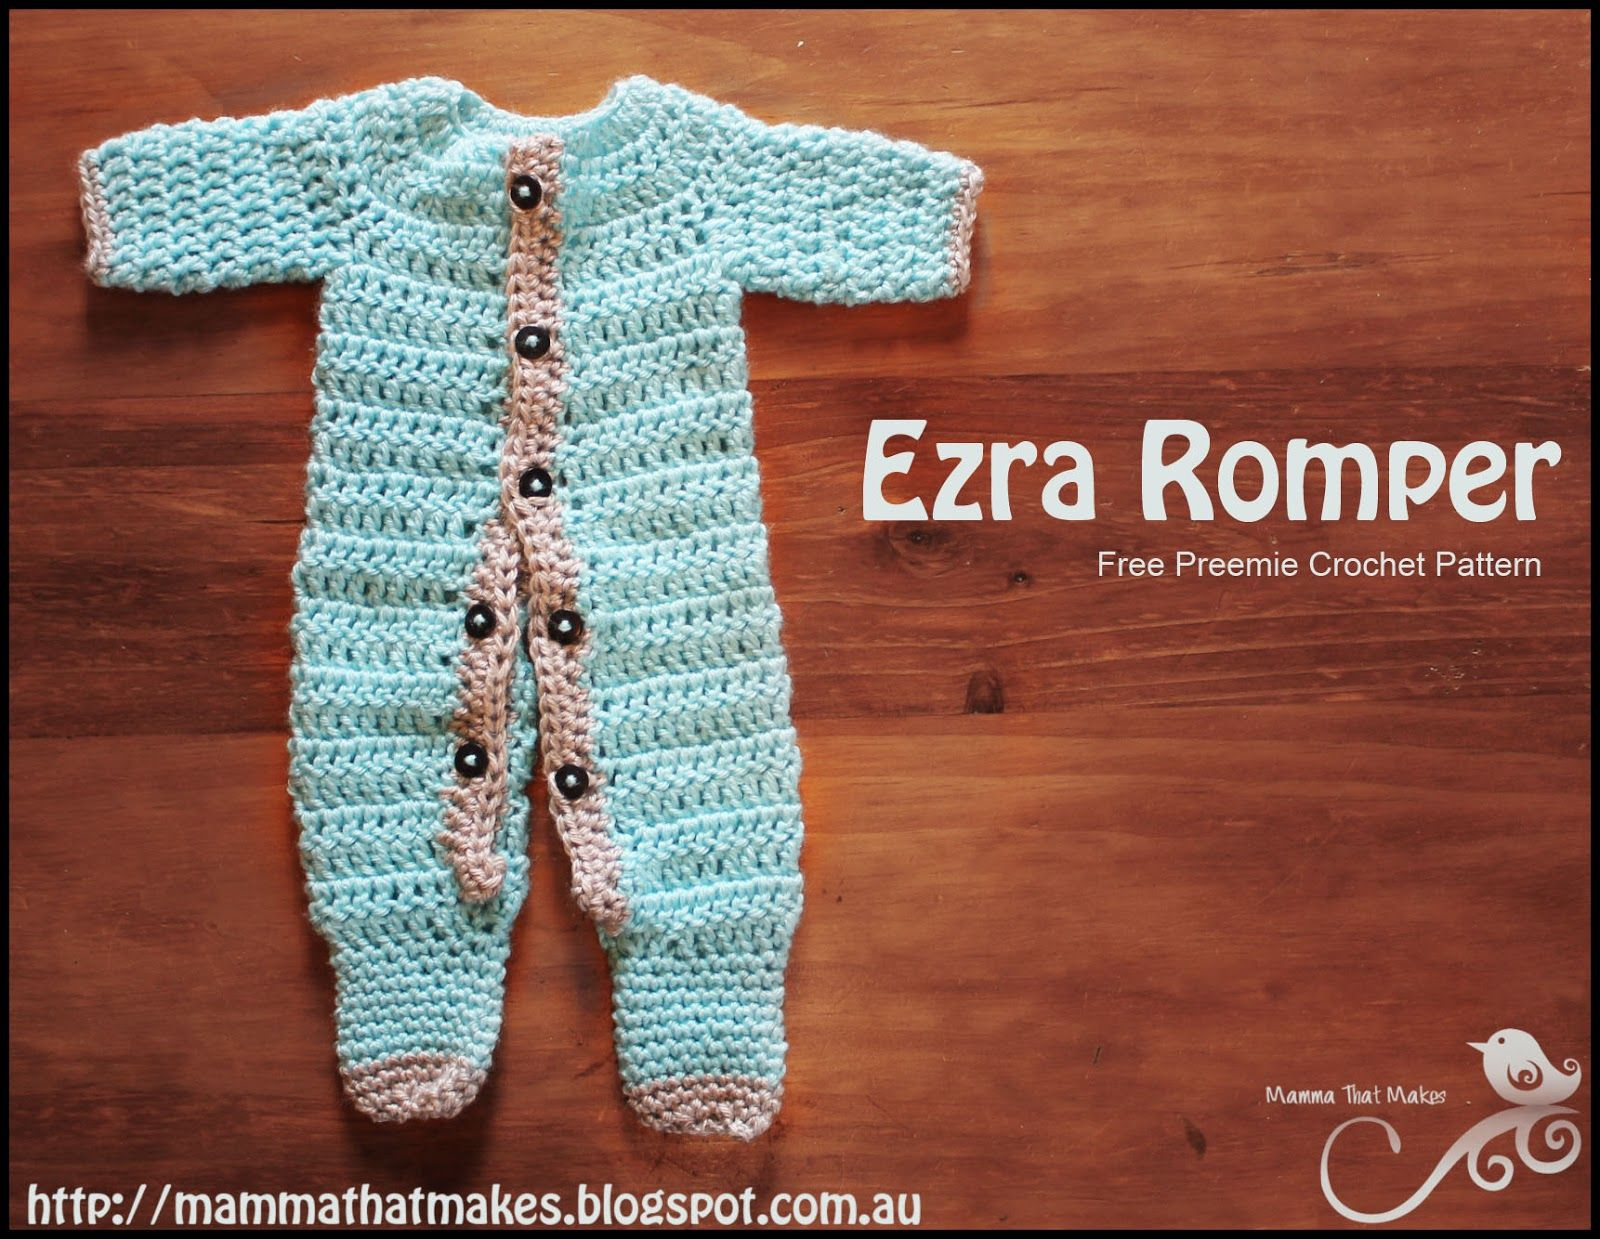 Ezra Romper. A free crochet prem baby pattern from Mamma That Makes ...